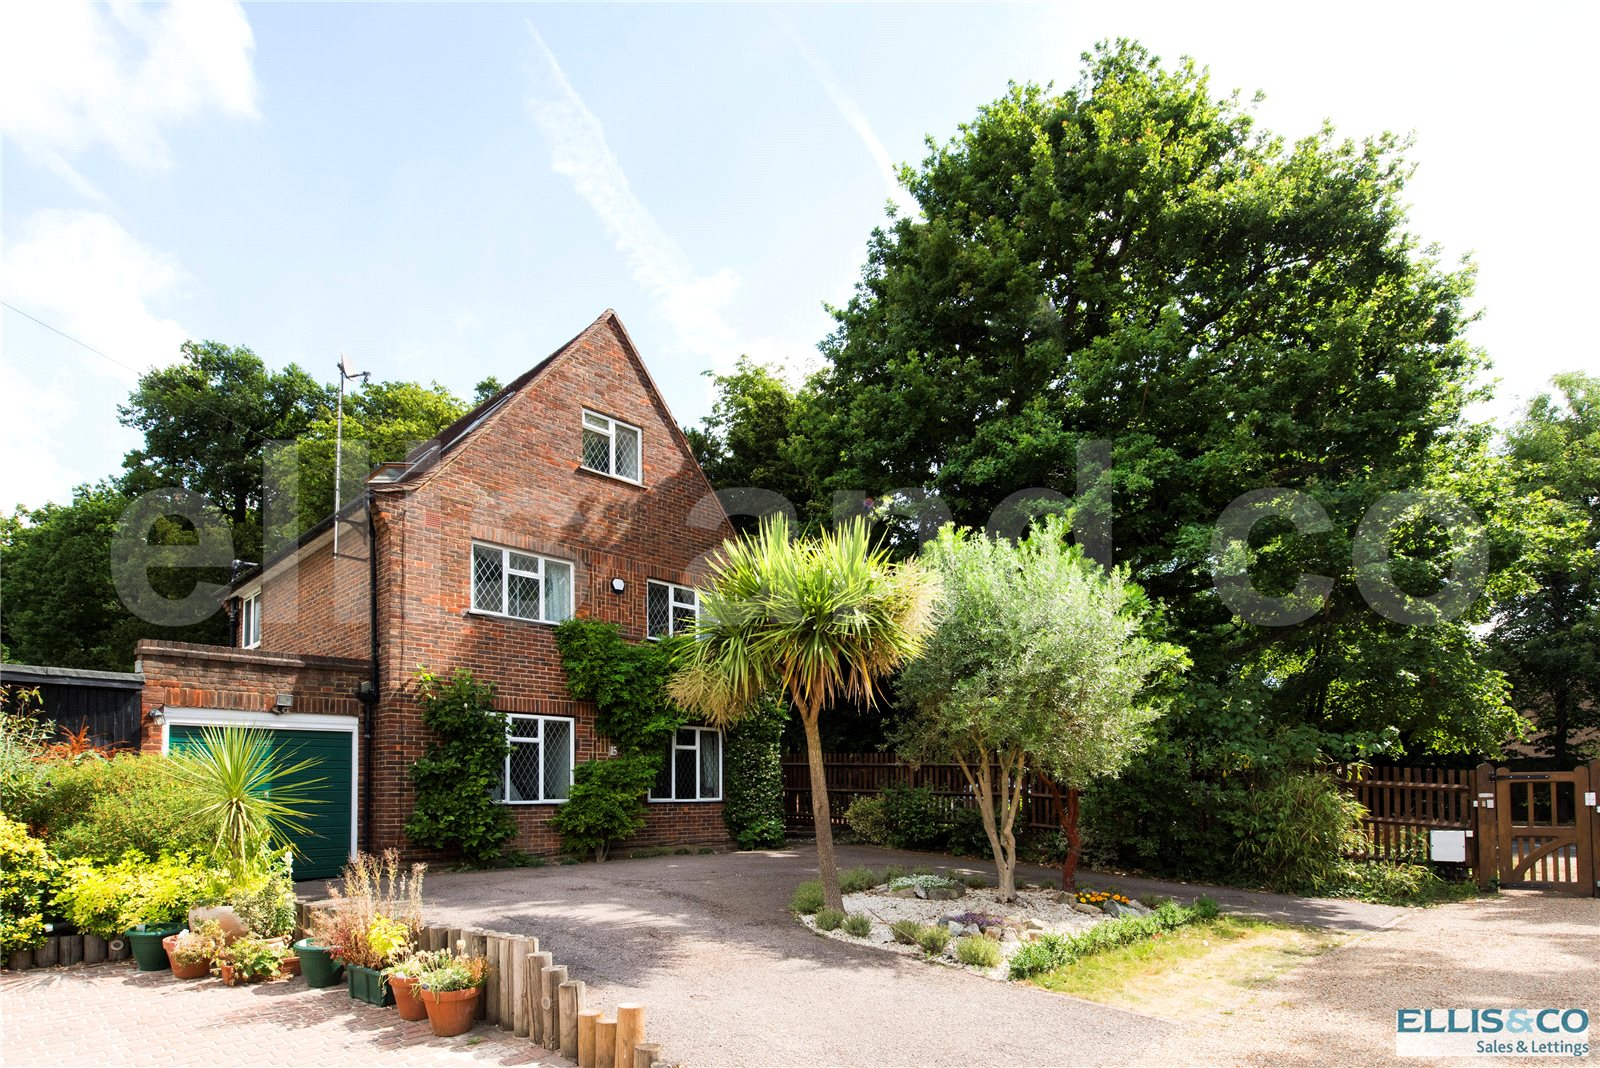 4 Bedrooms Detached House for sale in Tudor Close Mill Hill London NW7